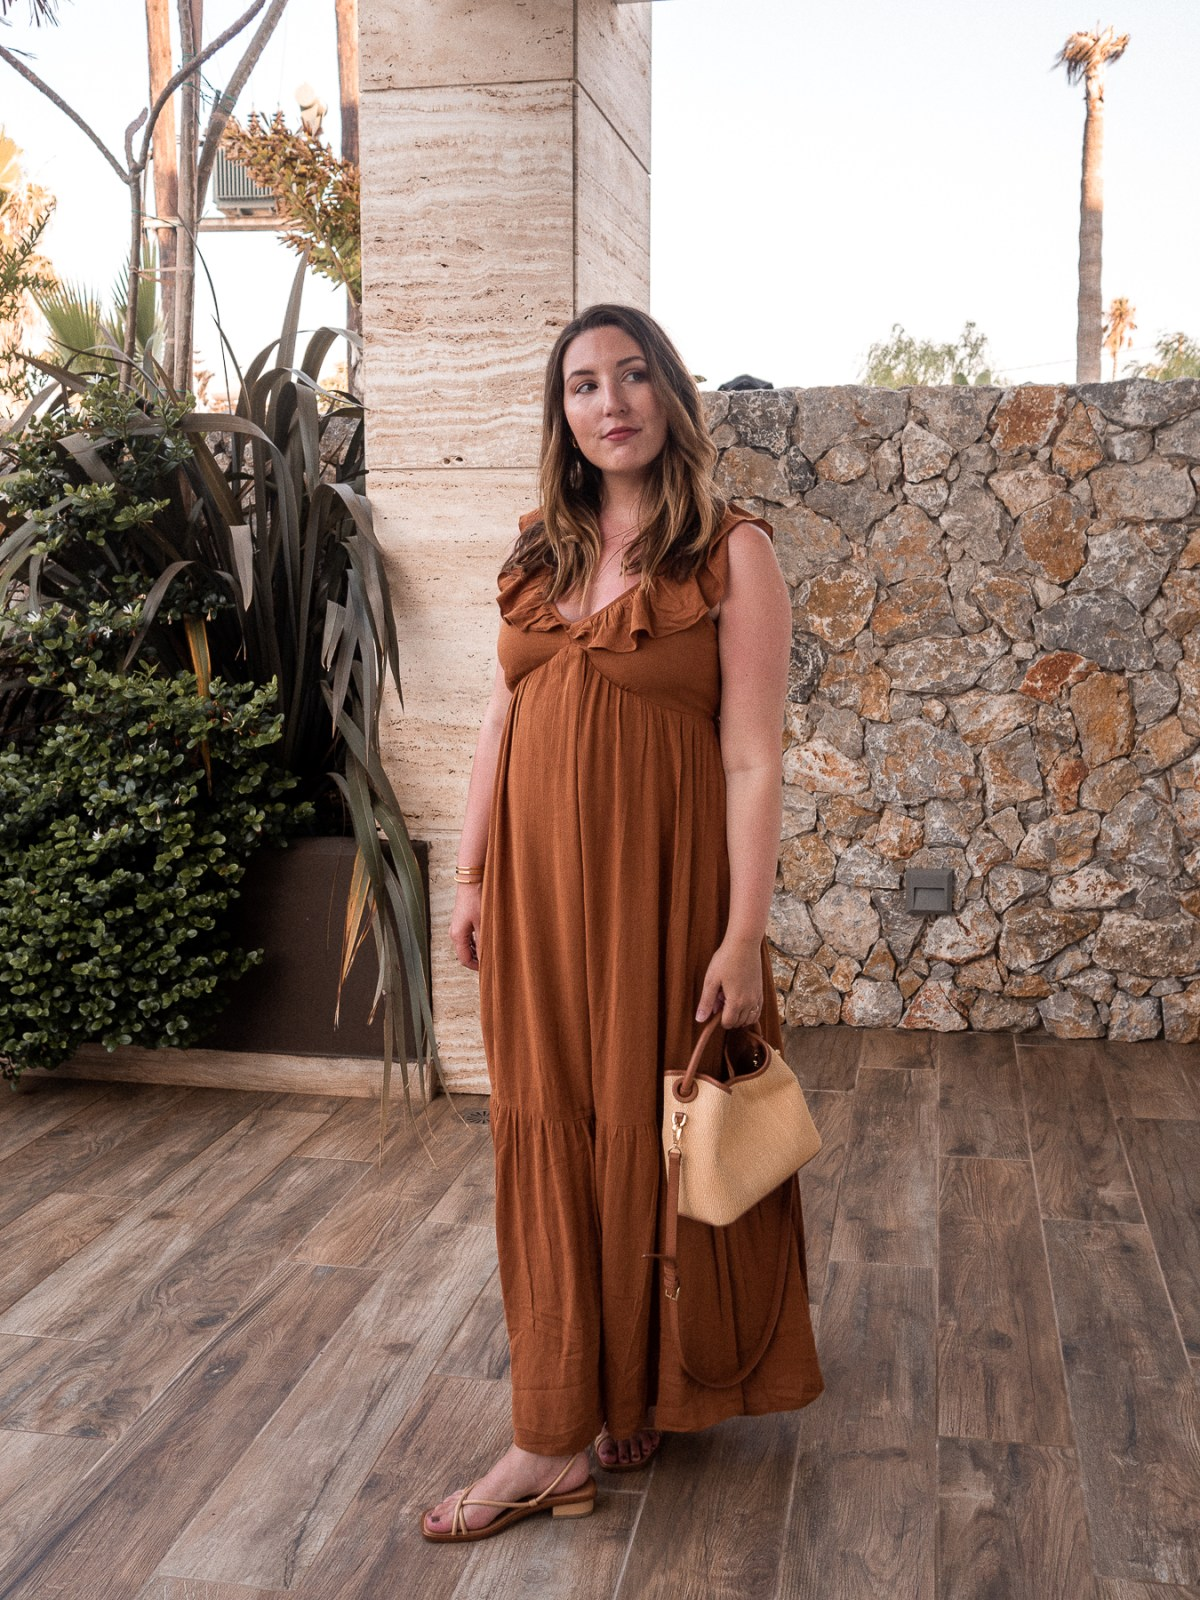 Packing for a Greece babymoon, featuring Warehouse amber ruffle dress, Elleme Baozi tote, and Loq strappy sandals | W&S